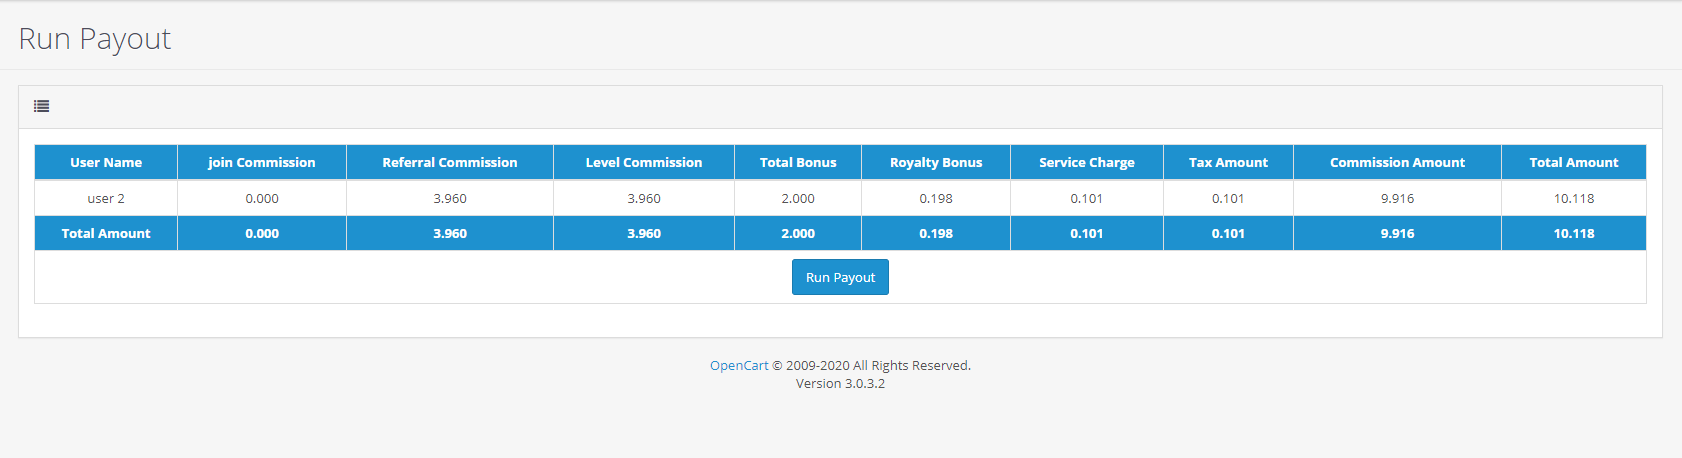 |'Opencart'| |'letscms'| |'opencart unilevel mlm plan'| |'run payout'| |'payout'| |'run'| |'Dashboard'| |'unilevel mlm plan'| |'mlm'| |'mlm Plan'|  |'setting'| |'new users'| |'unilevel'| |'unilevel mlm extension'| |'costomer list'| |'new users'| |'Installer'| |'mlmtrees.com'| |'mlm plan'| |'extension'| |'Opencart mlm plan'|